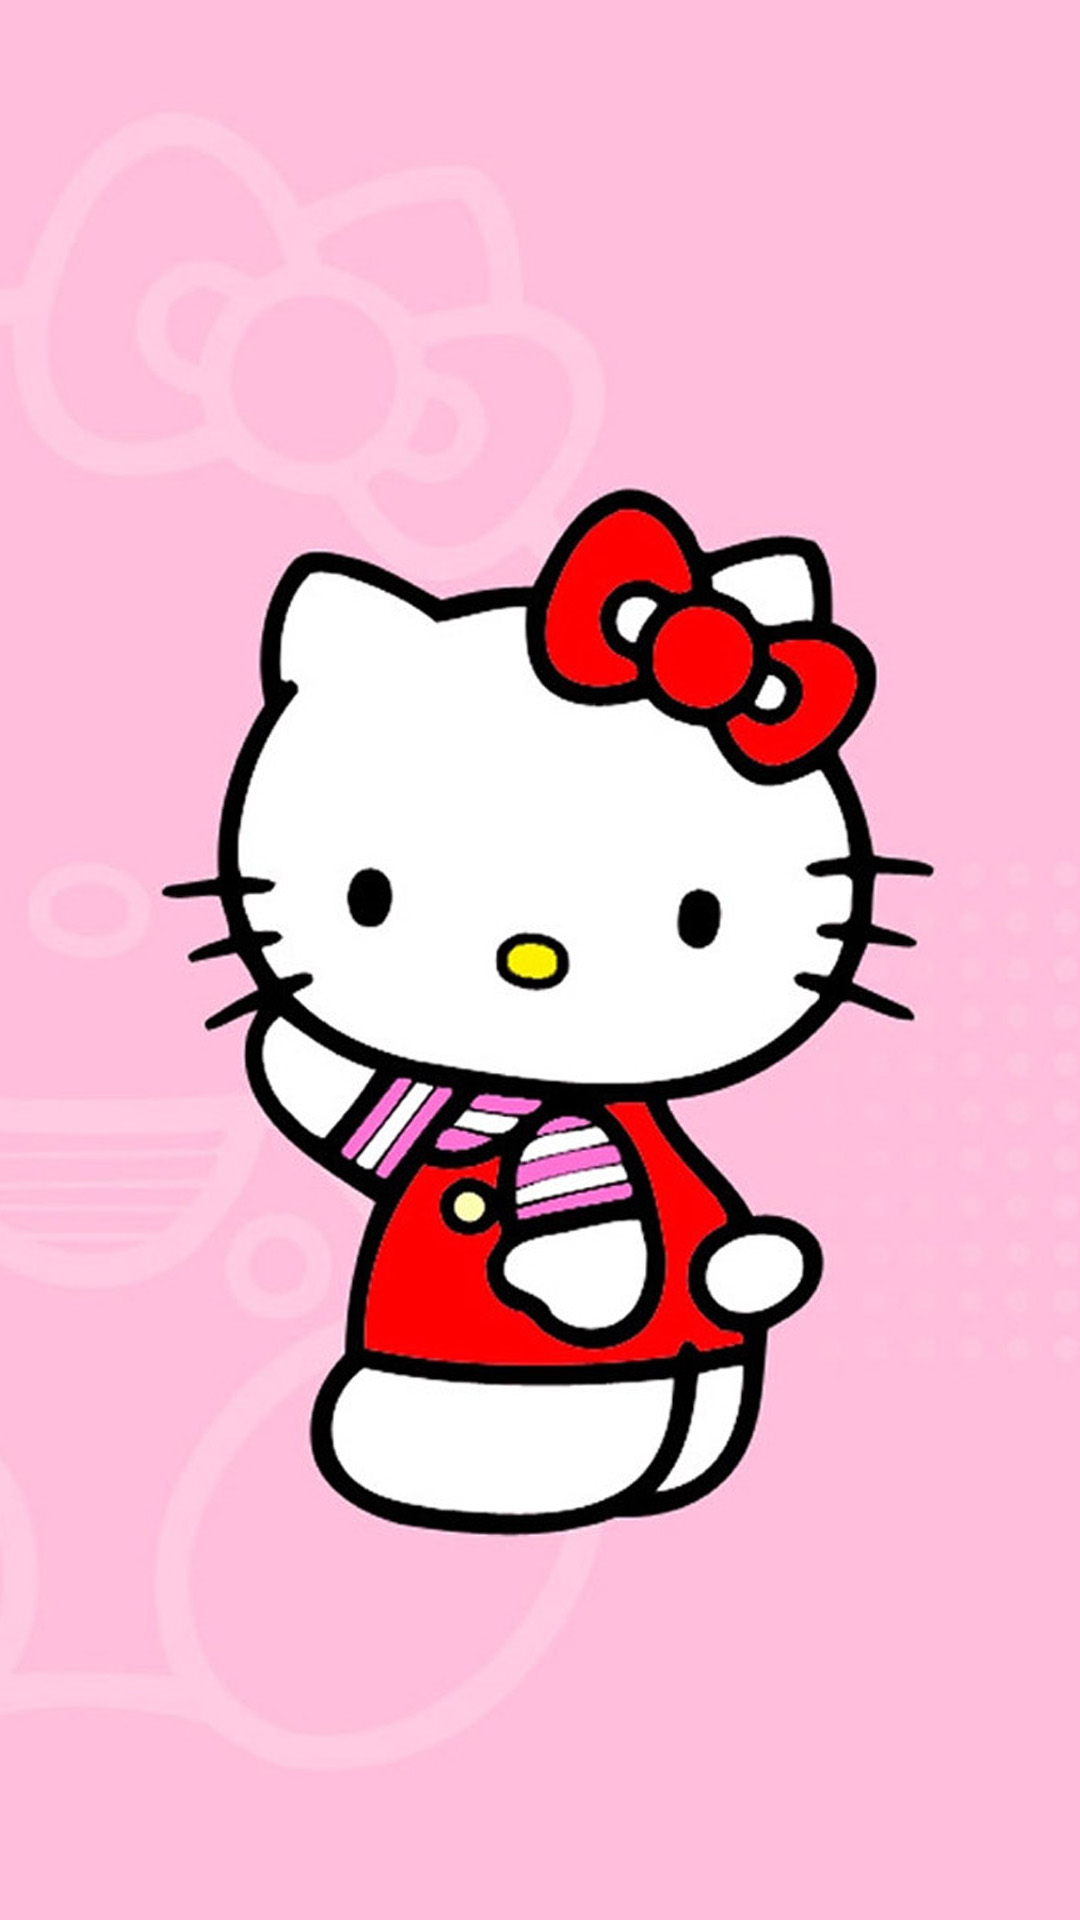 Hello Kitty Wallpaper for iPhone - WallpaperSafari